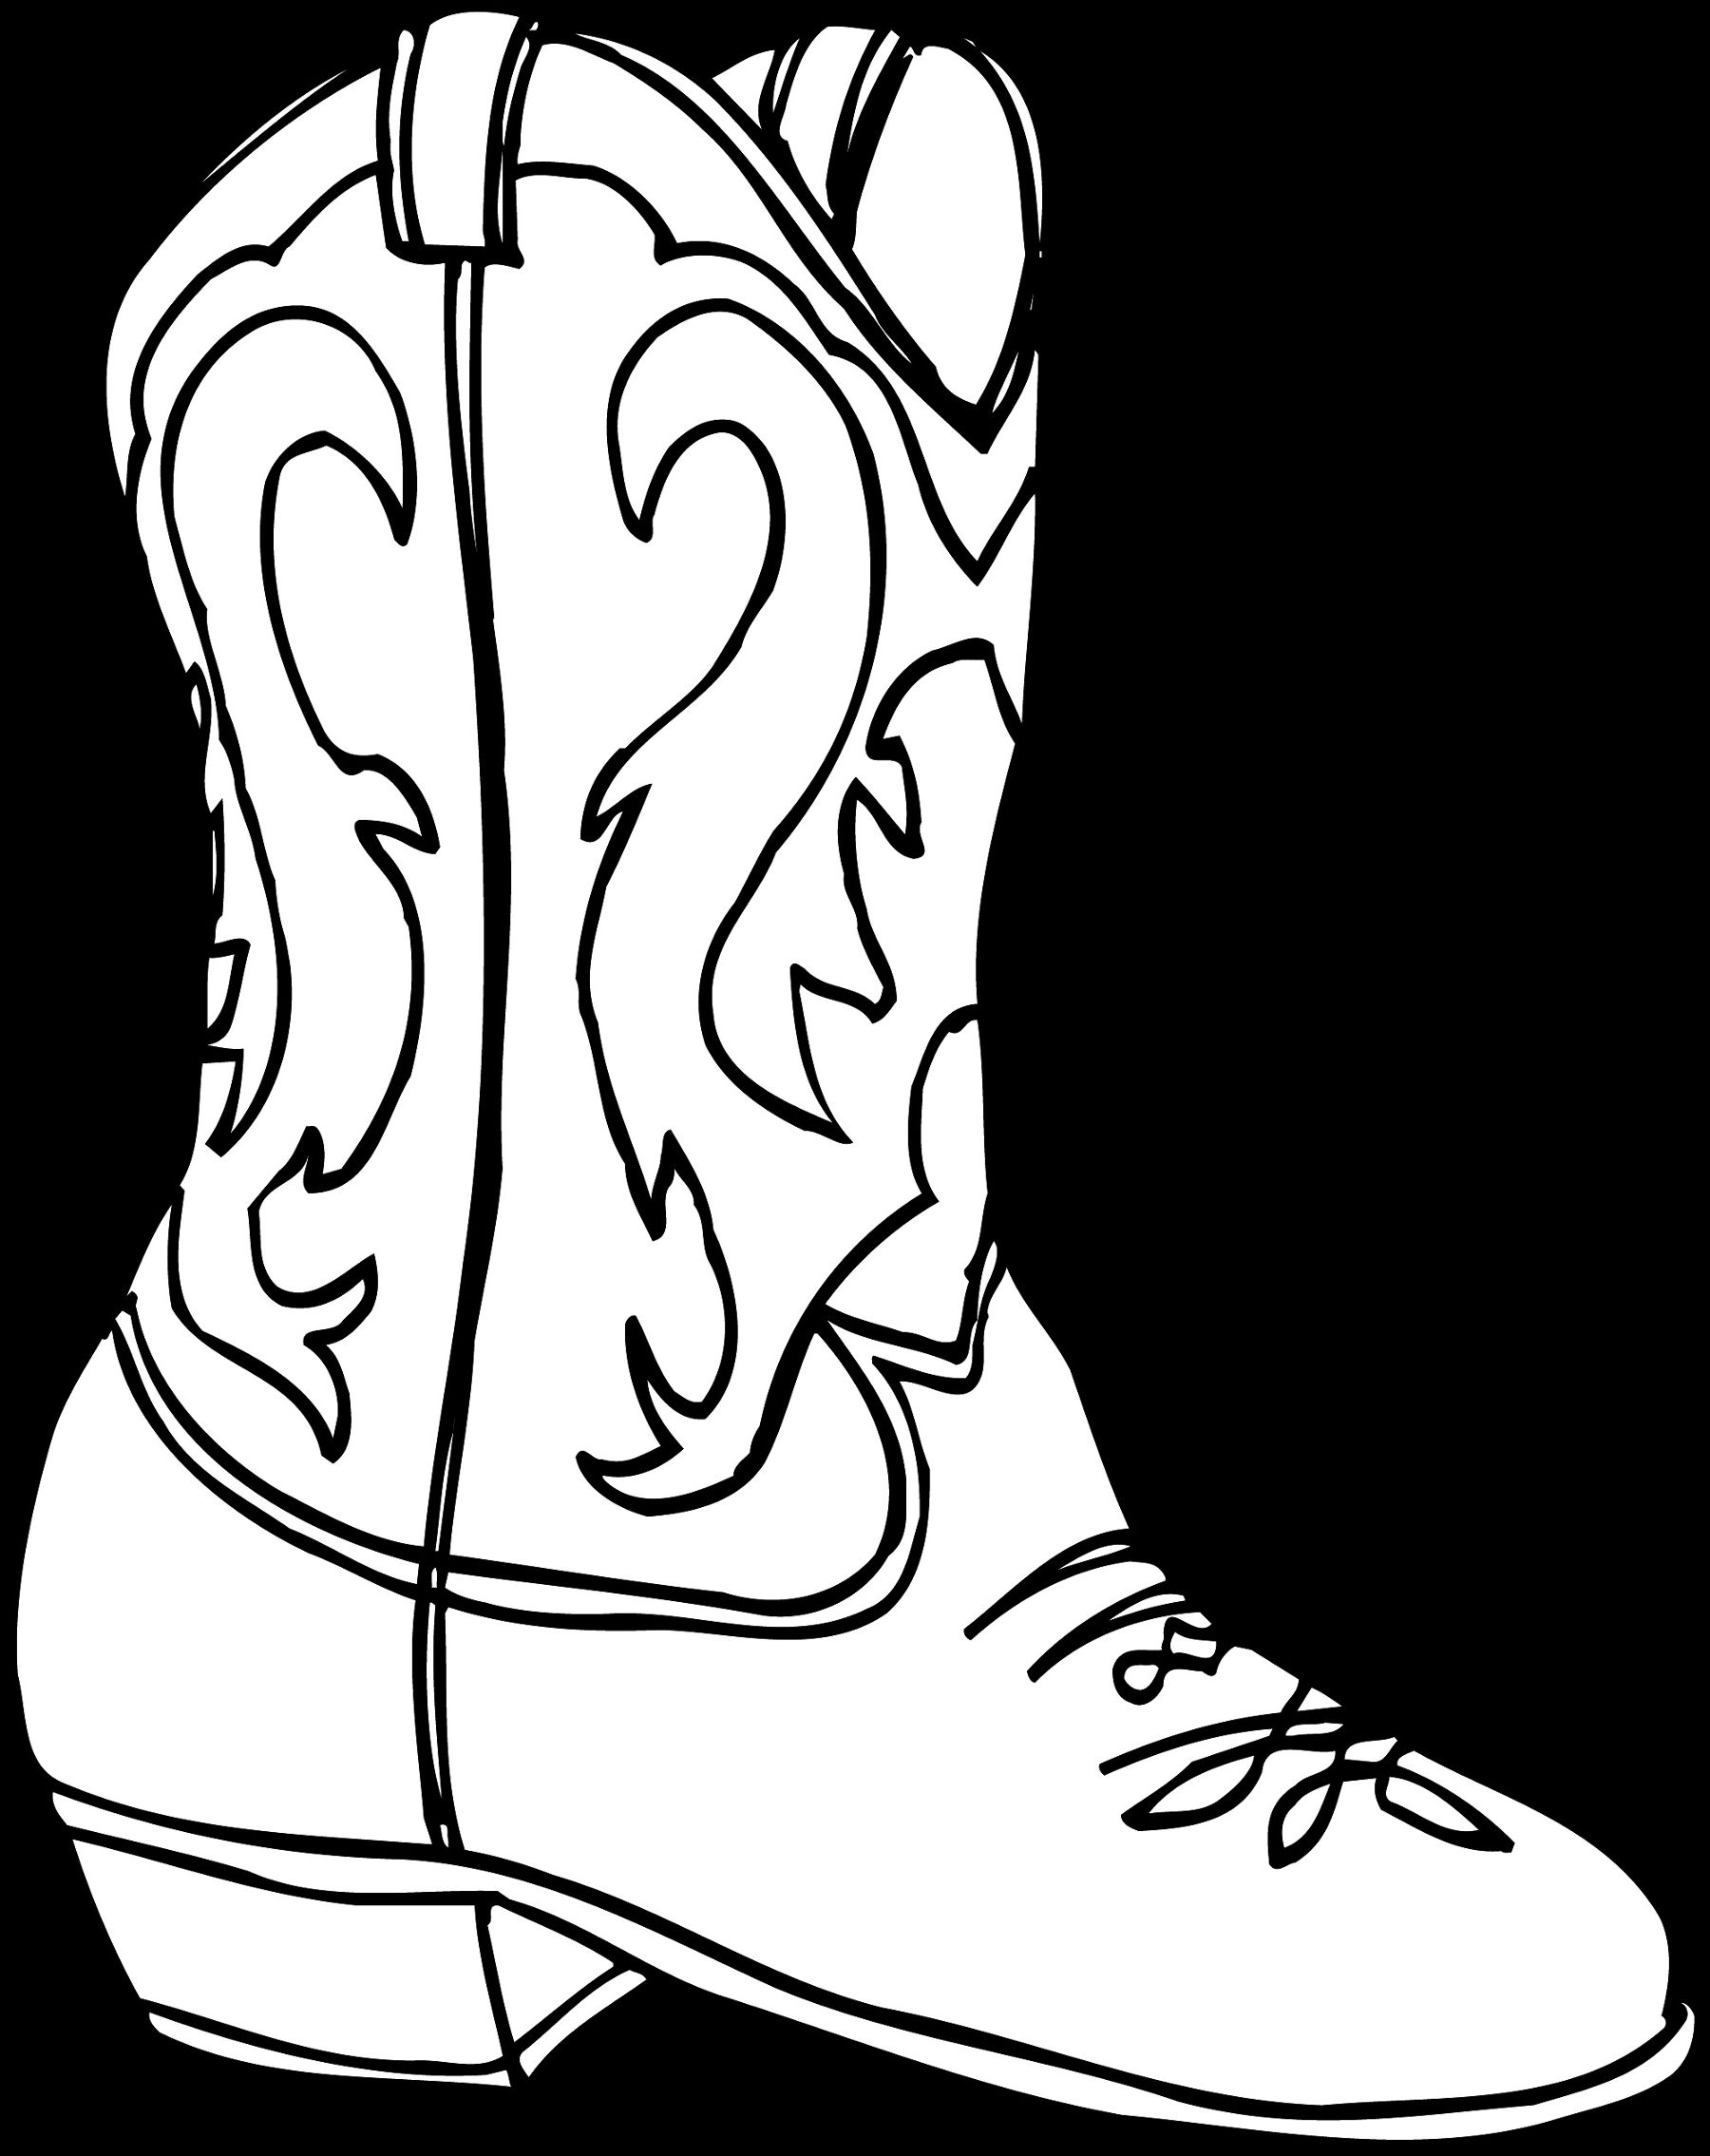 Cowboy Boot Line Drawing at GetDrawings.com | Free for personal use ...